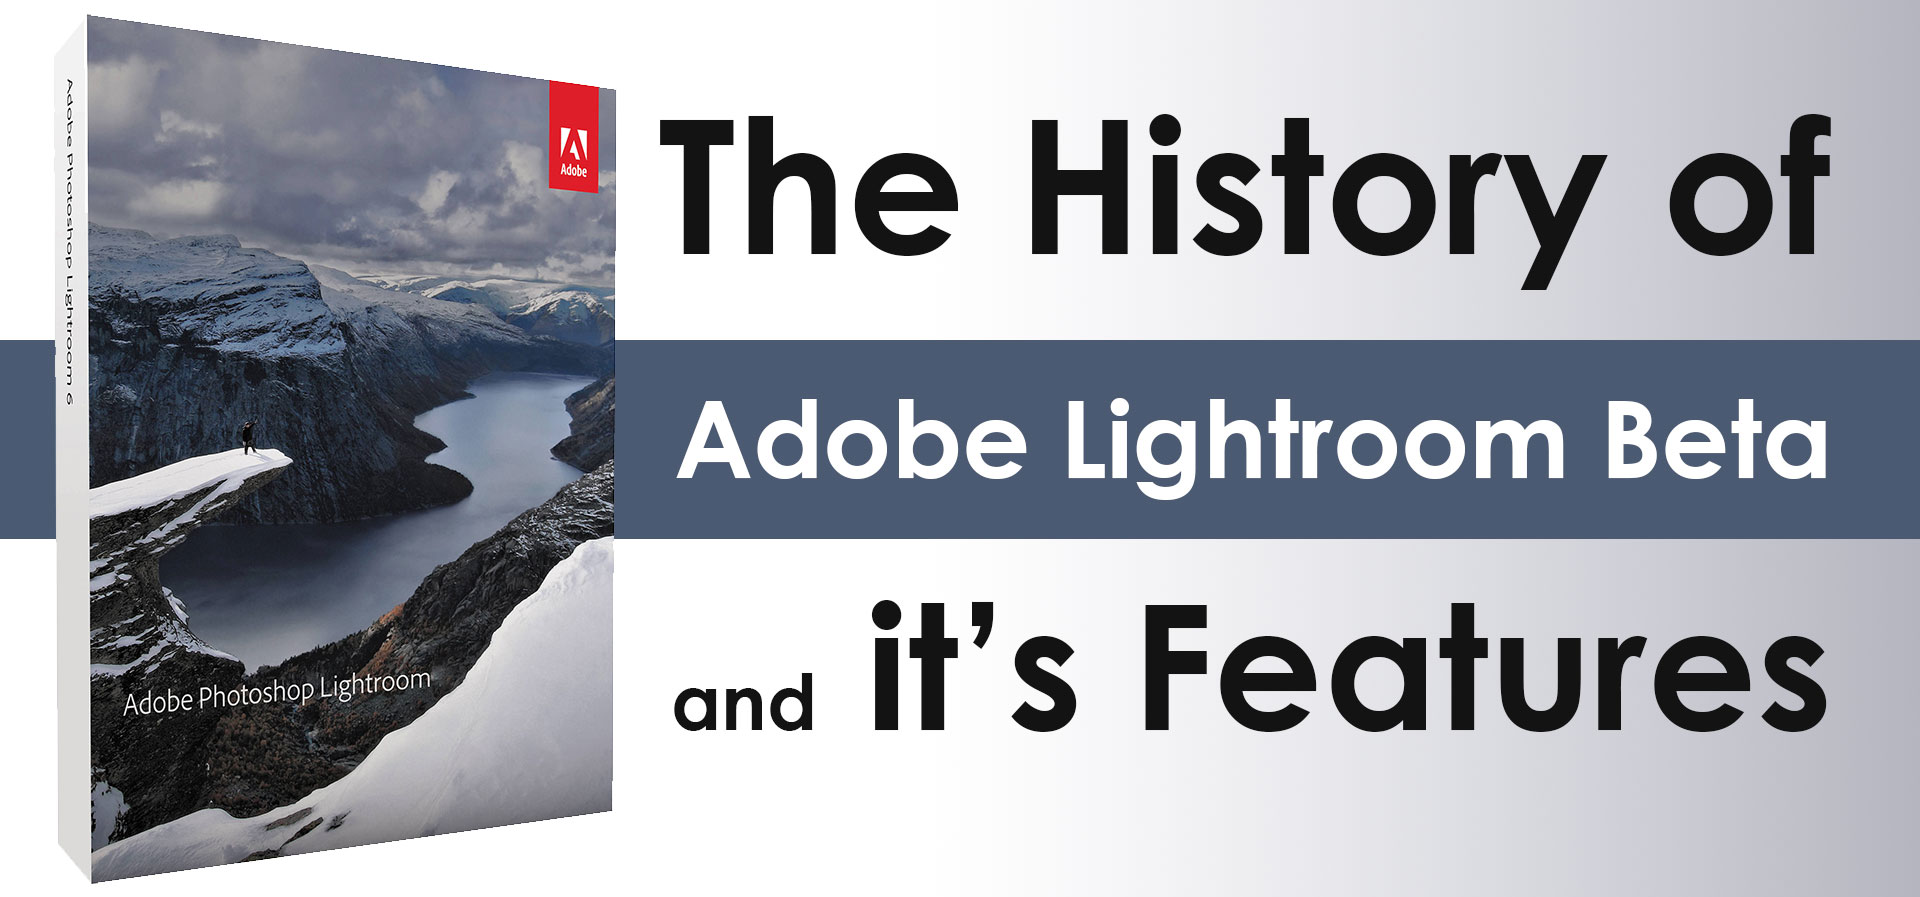 The-History-of-Adobe-Lightroom-Beta-and-its-Features